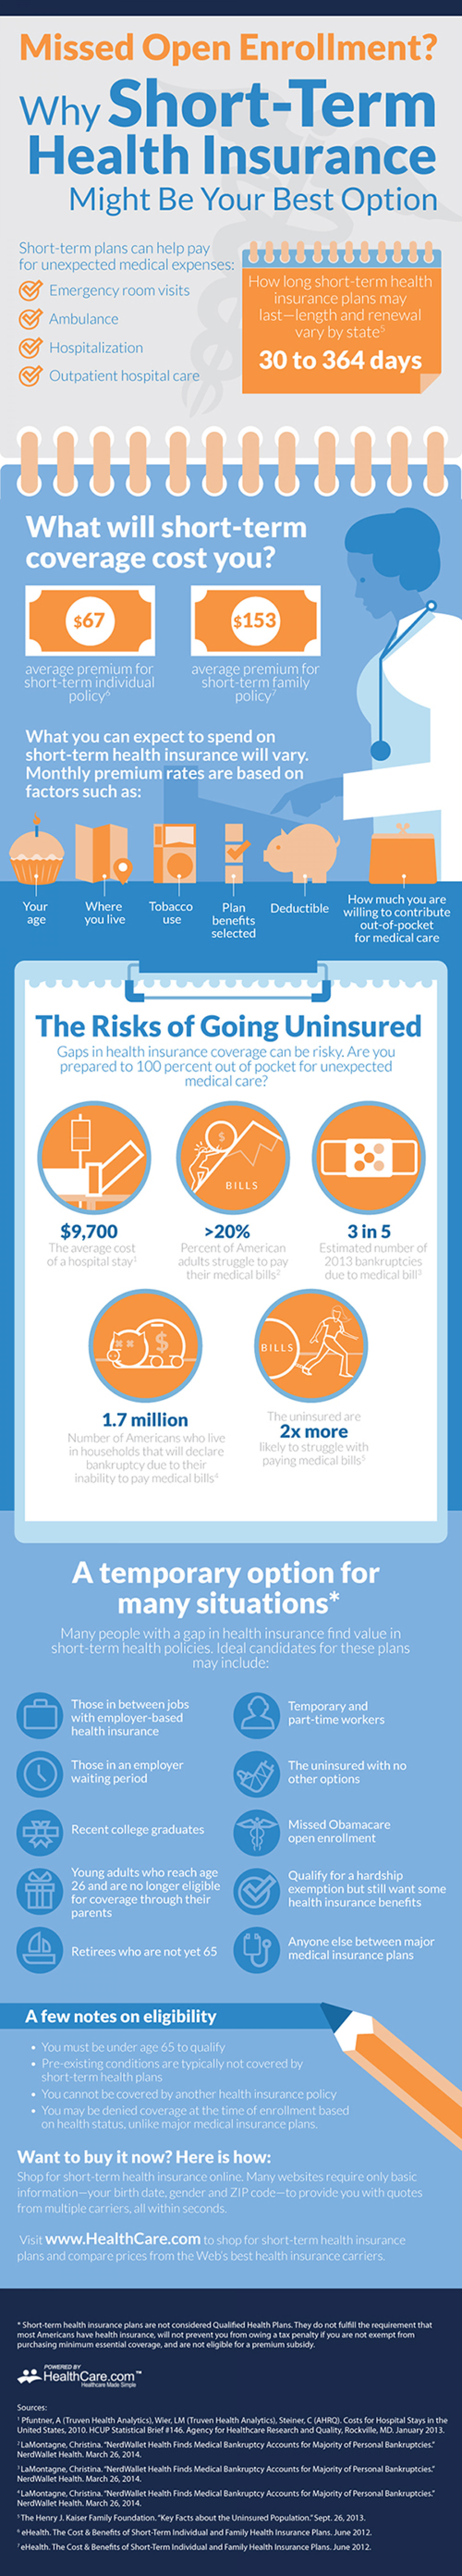 Why Short-Term Health Insurance Might Be Your Best Option Infographic